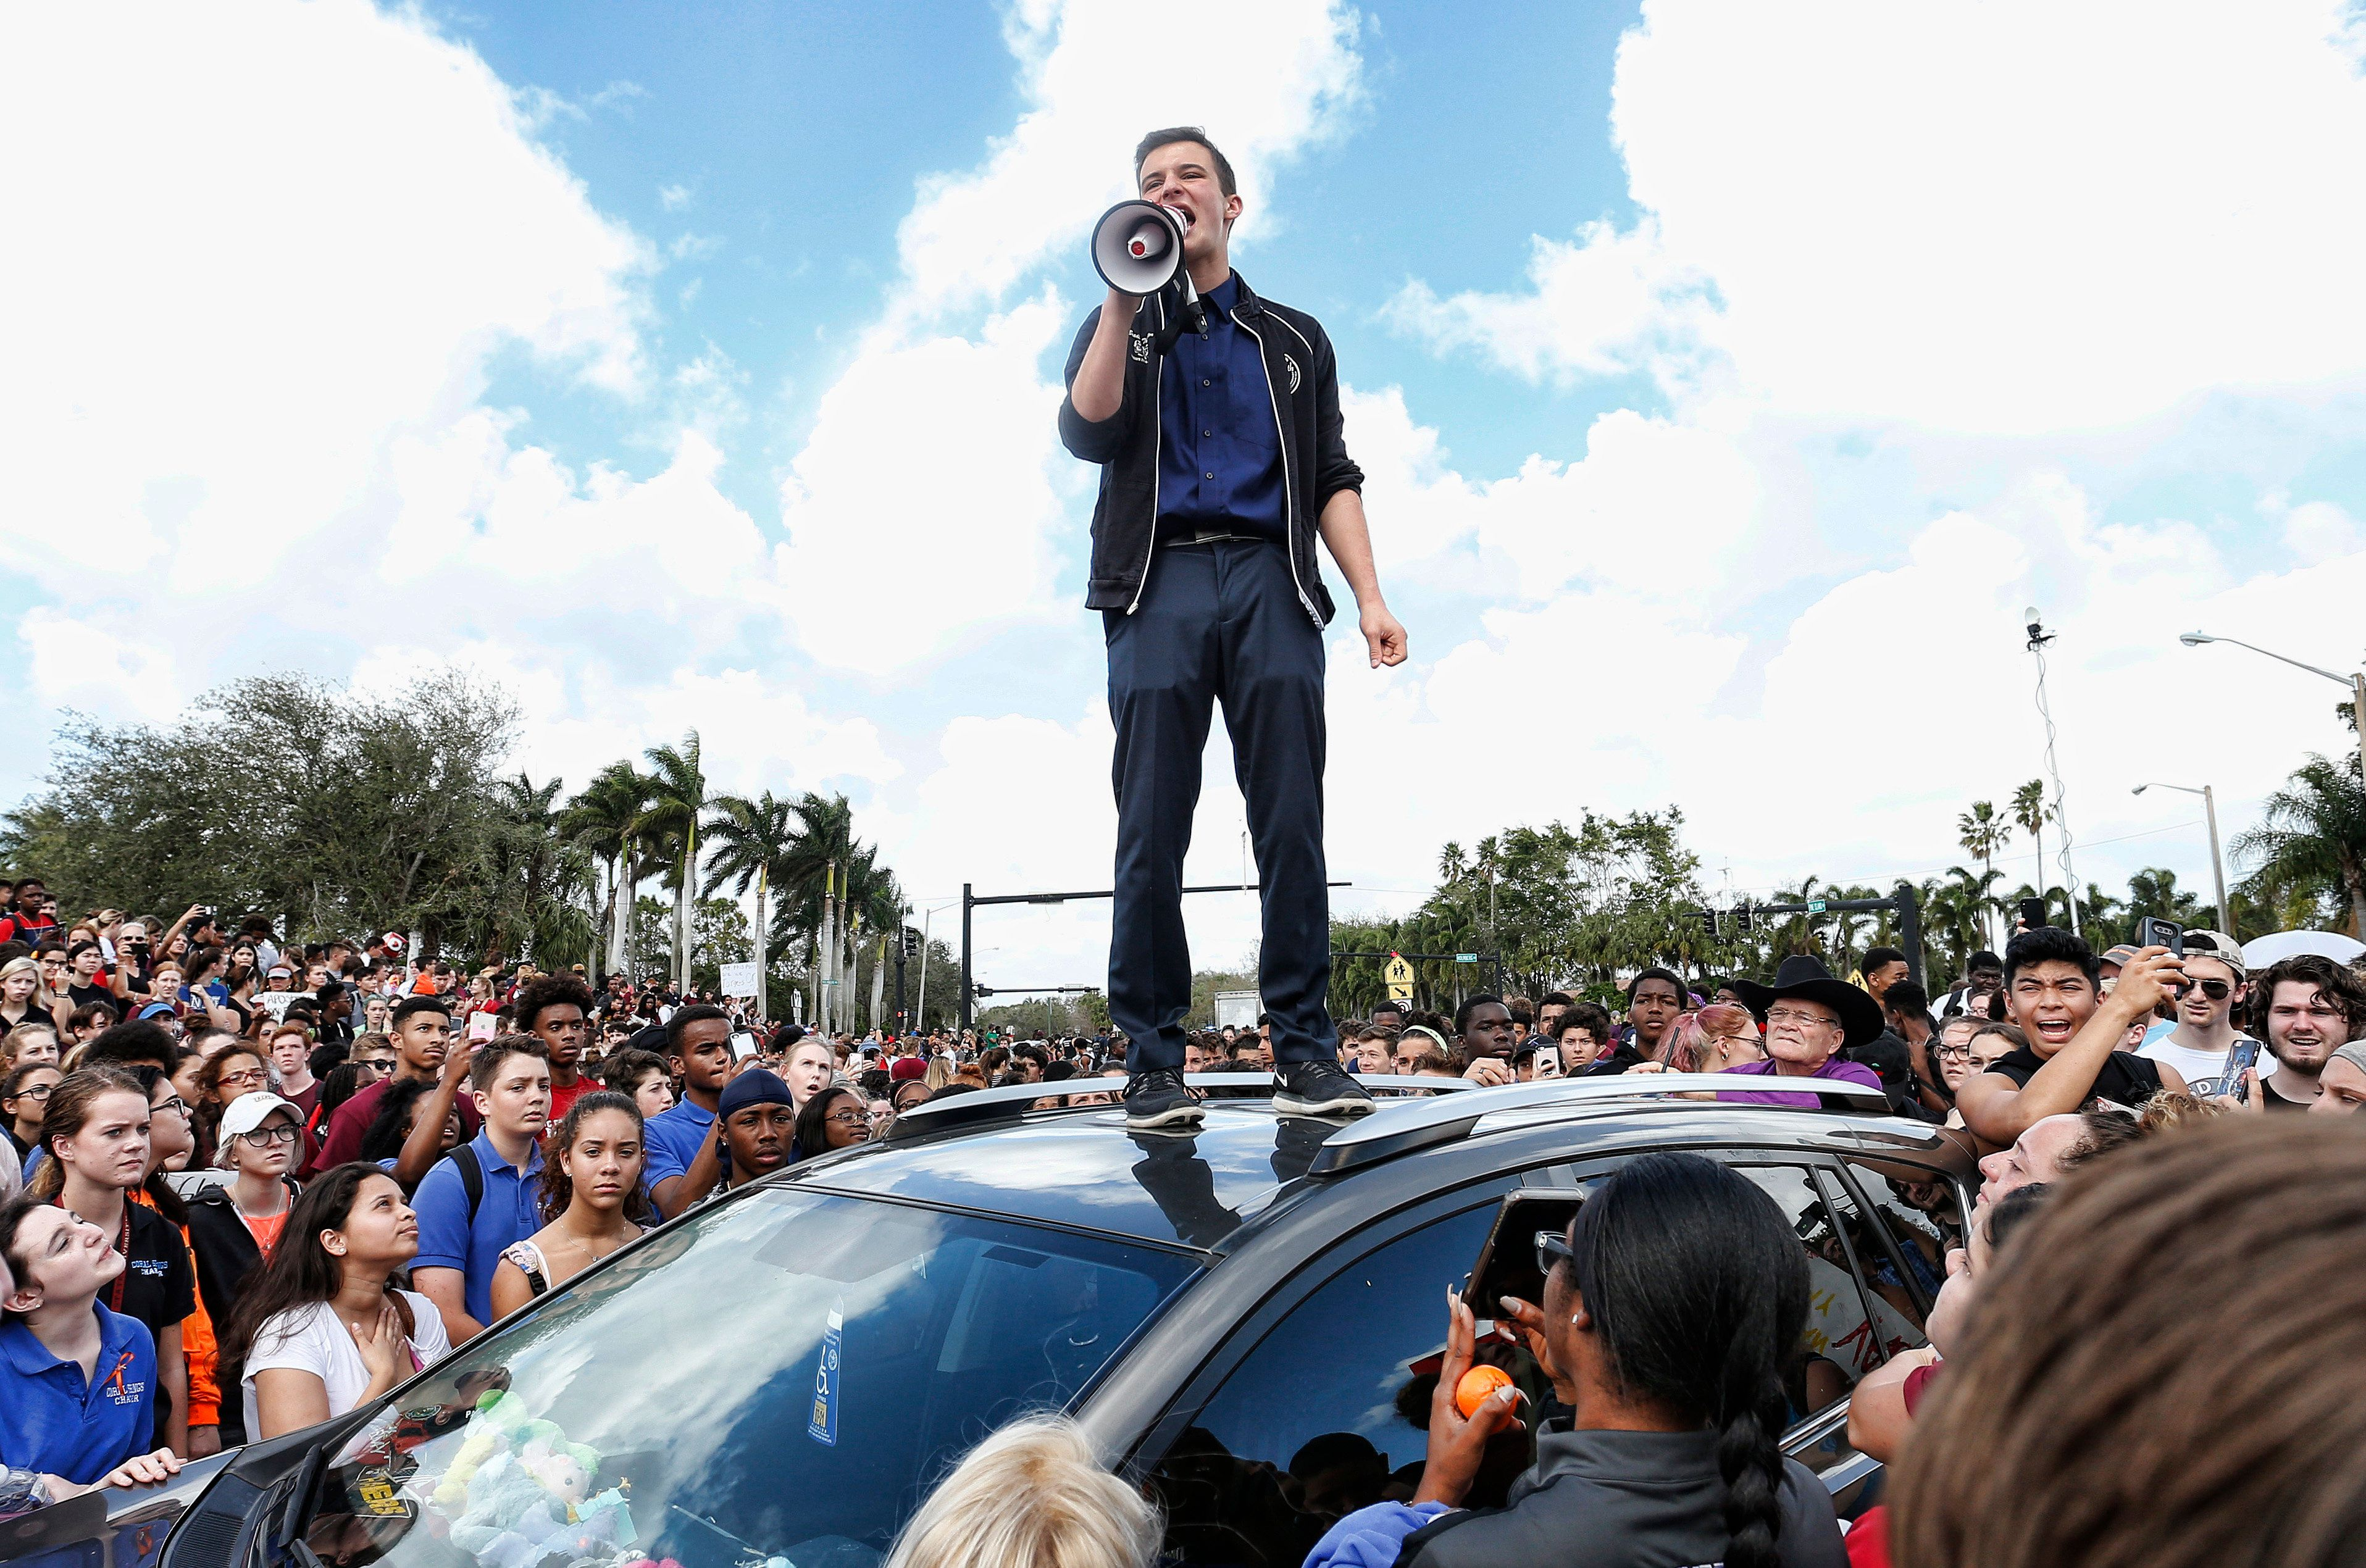 Majory Stoneman High School student Cameron Kasky addresses area High Schoolstudents as they rally at Marjory Stoneman Douglas High School after participating in a county wide school walk out in Parkland, Florida on February 21, 2018.  A former student, Nikolas Cruz, opened fire at Marjory Stoneman Douglas High School leaving 17 people dead and 15 injured on February 14. / AFP PHOTO / RHONA WISE        (Photo credit should read RHONA WISE/AFP/Getty Images)